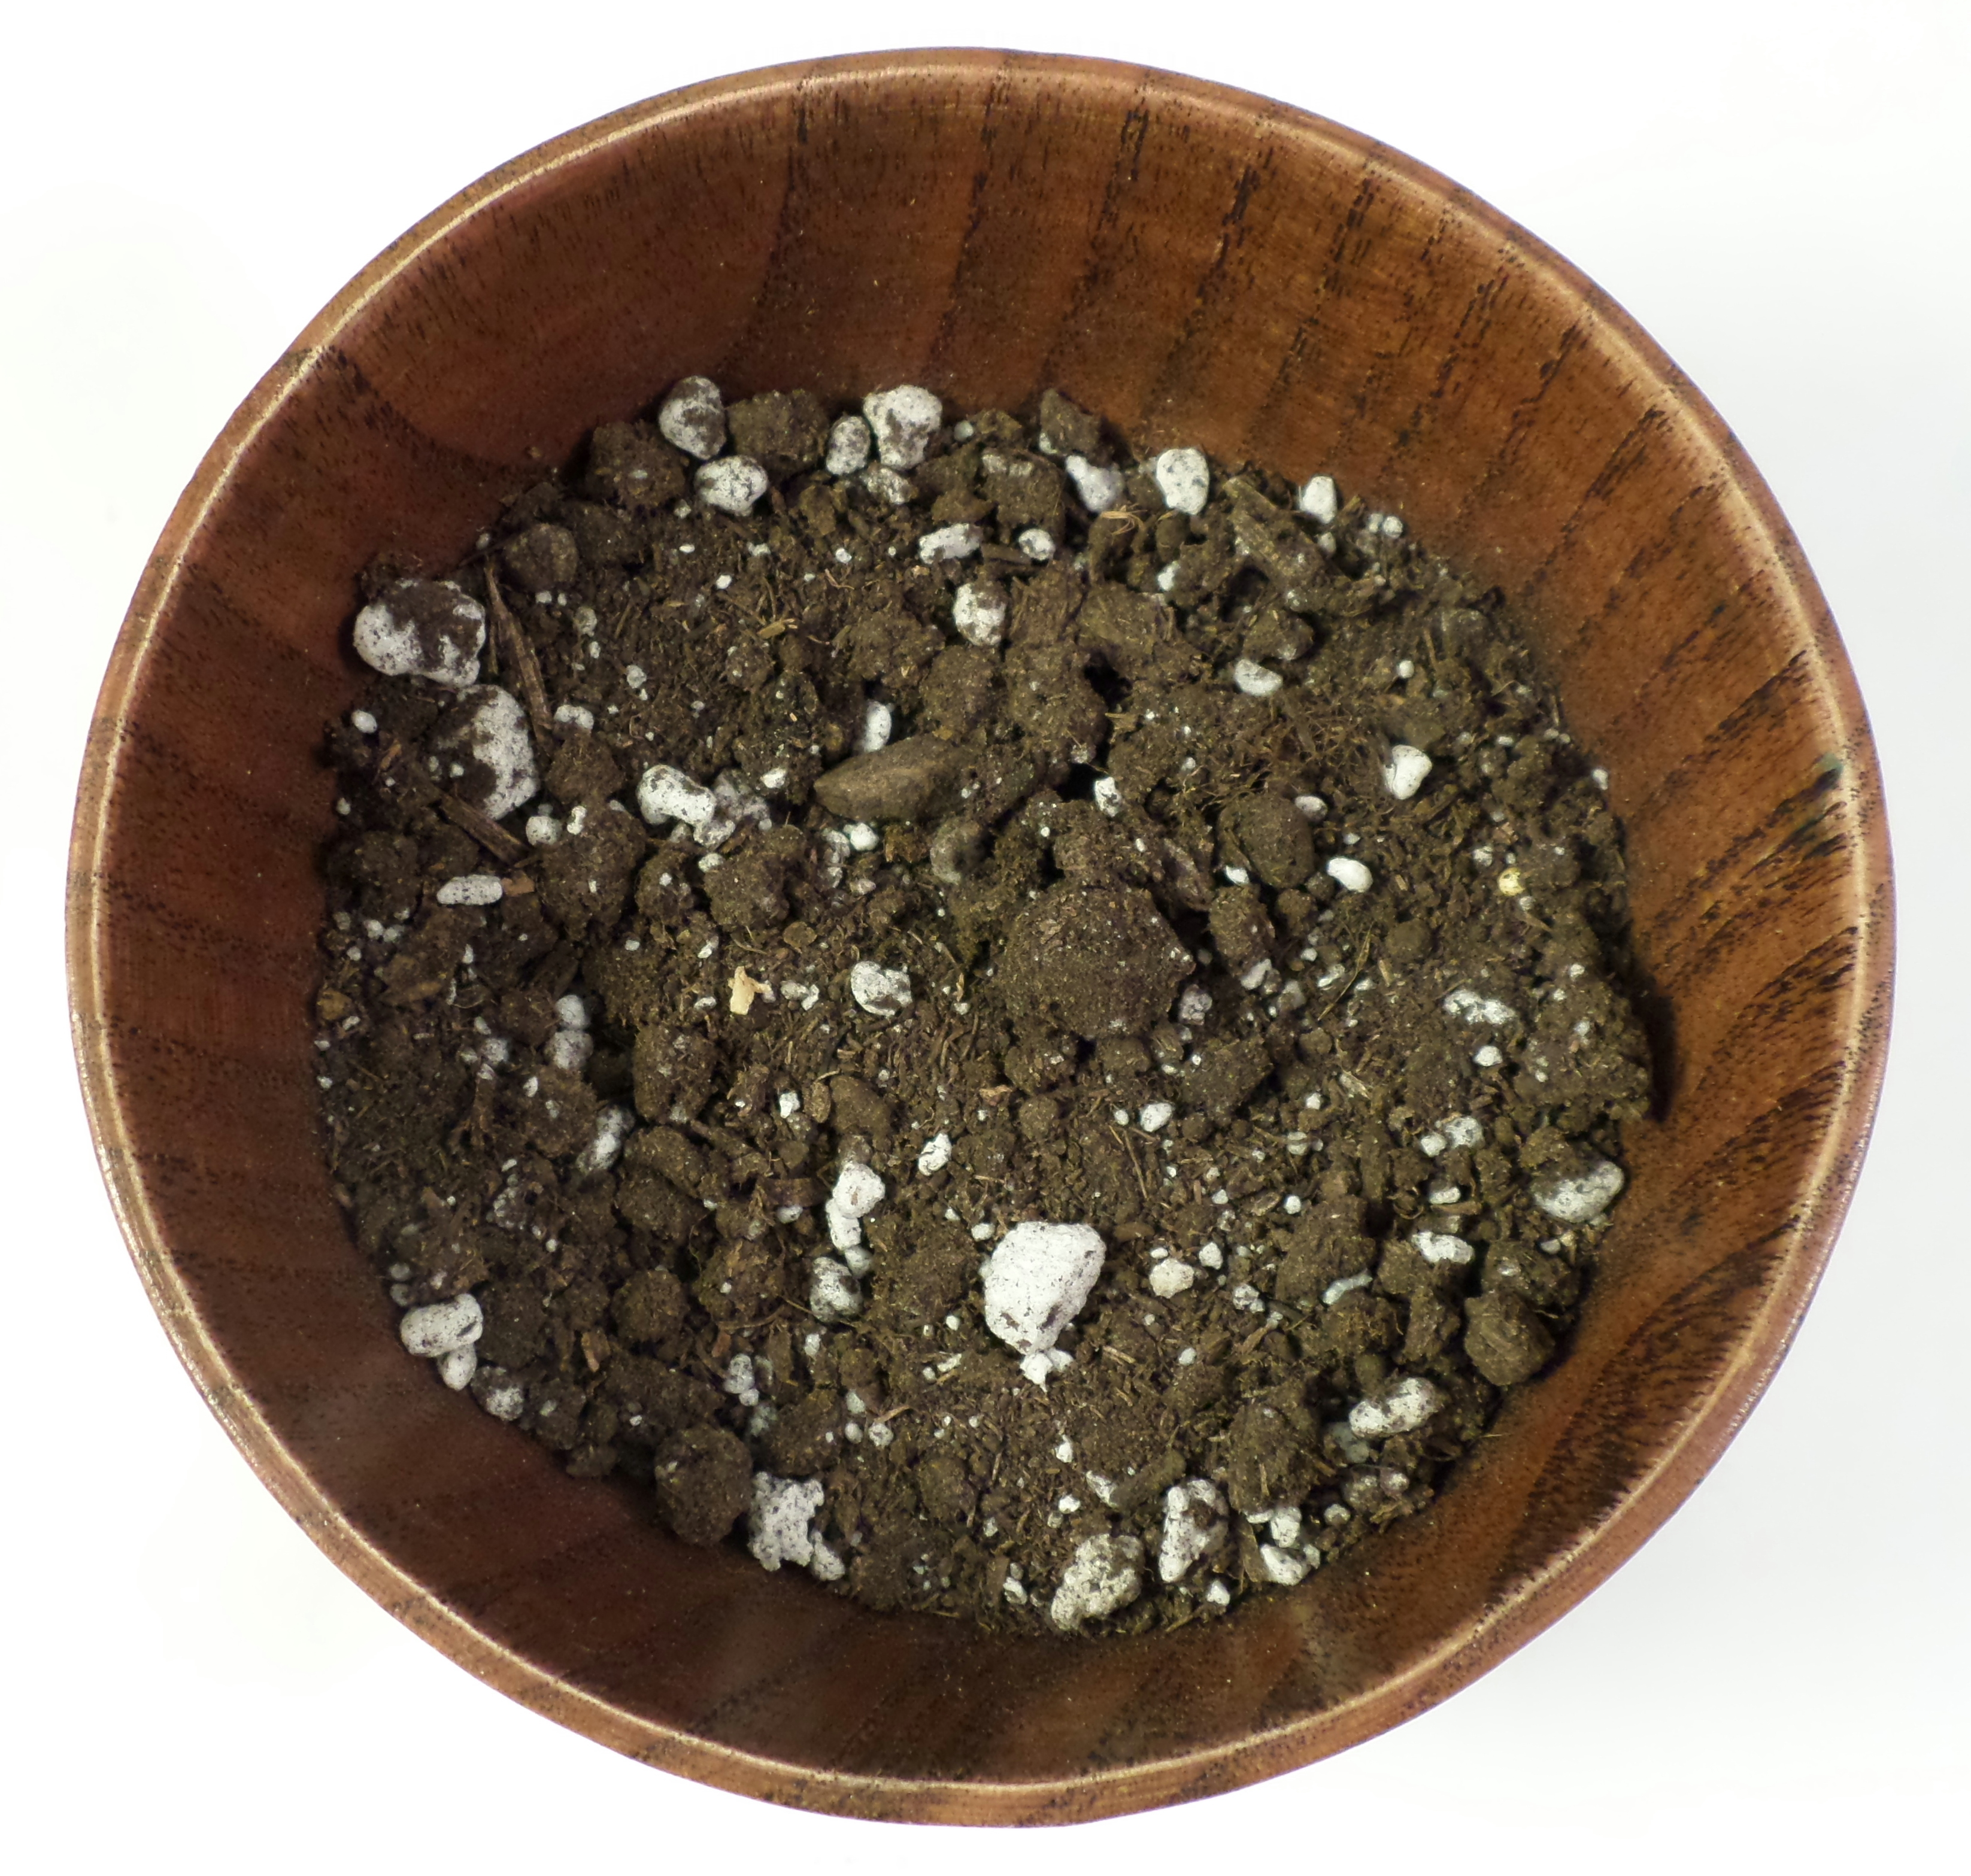 Picture of Adding the Soil